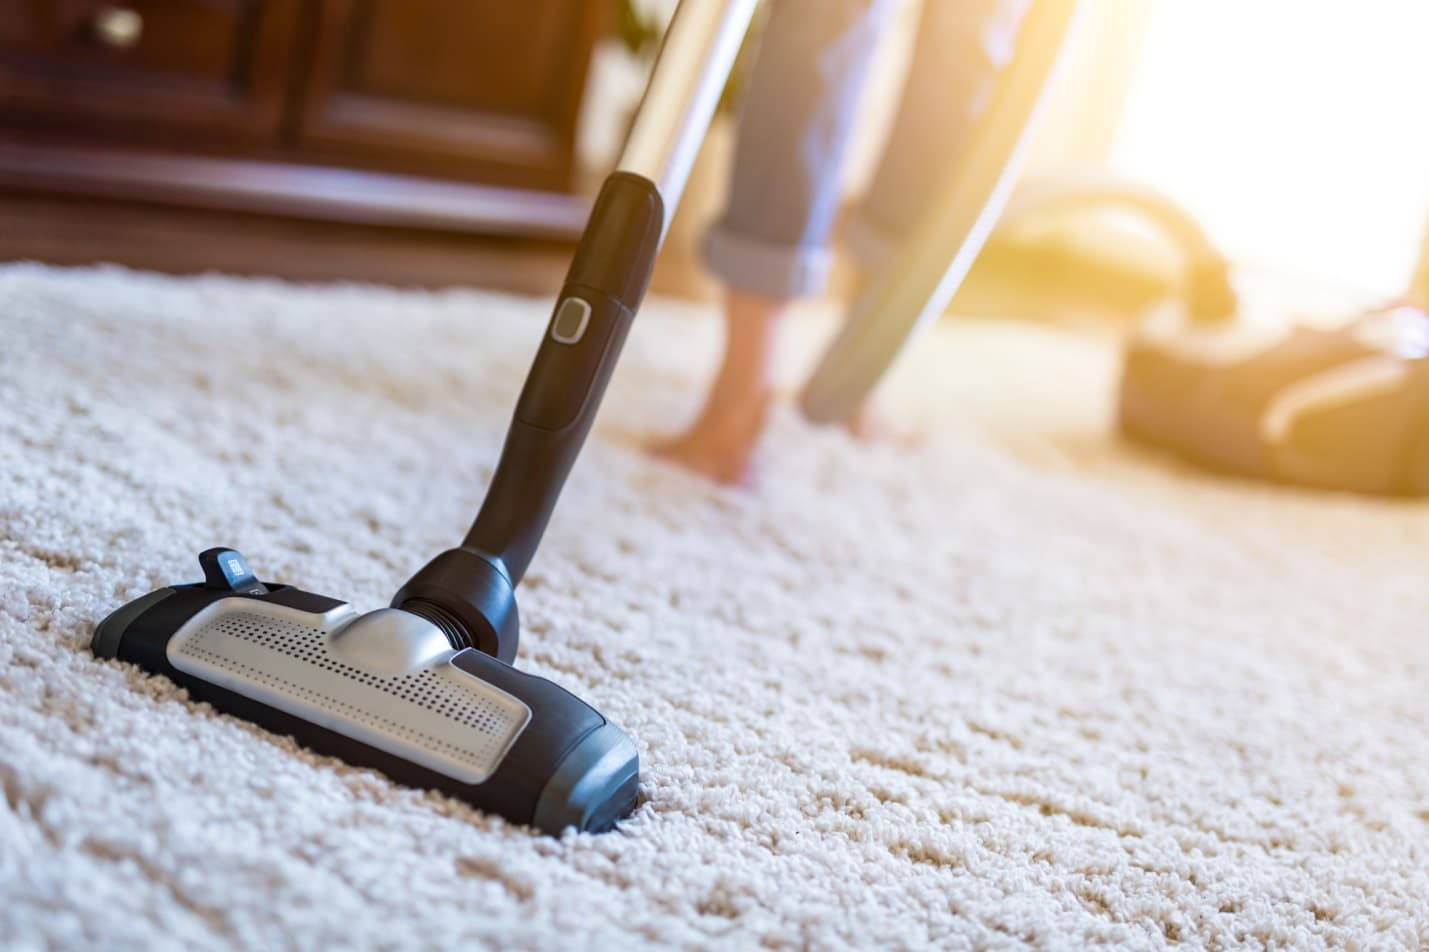 The Top Maintenance Tips to Keep Your Carpet Clean